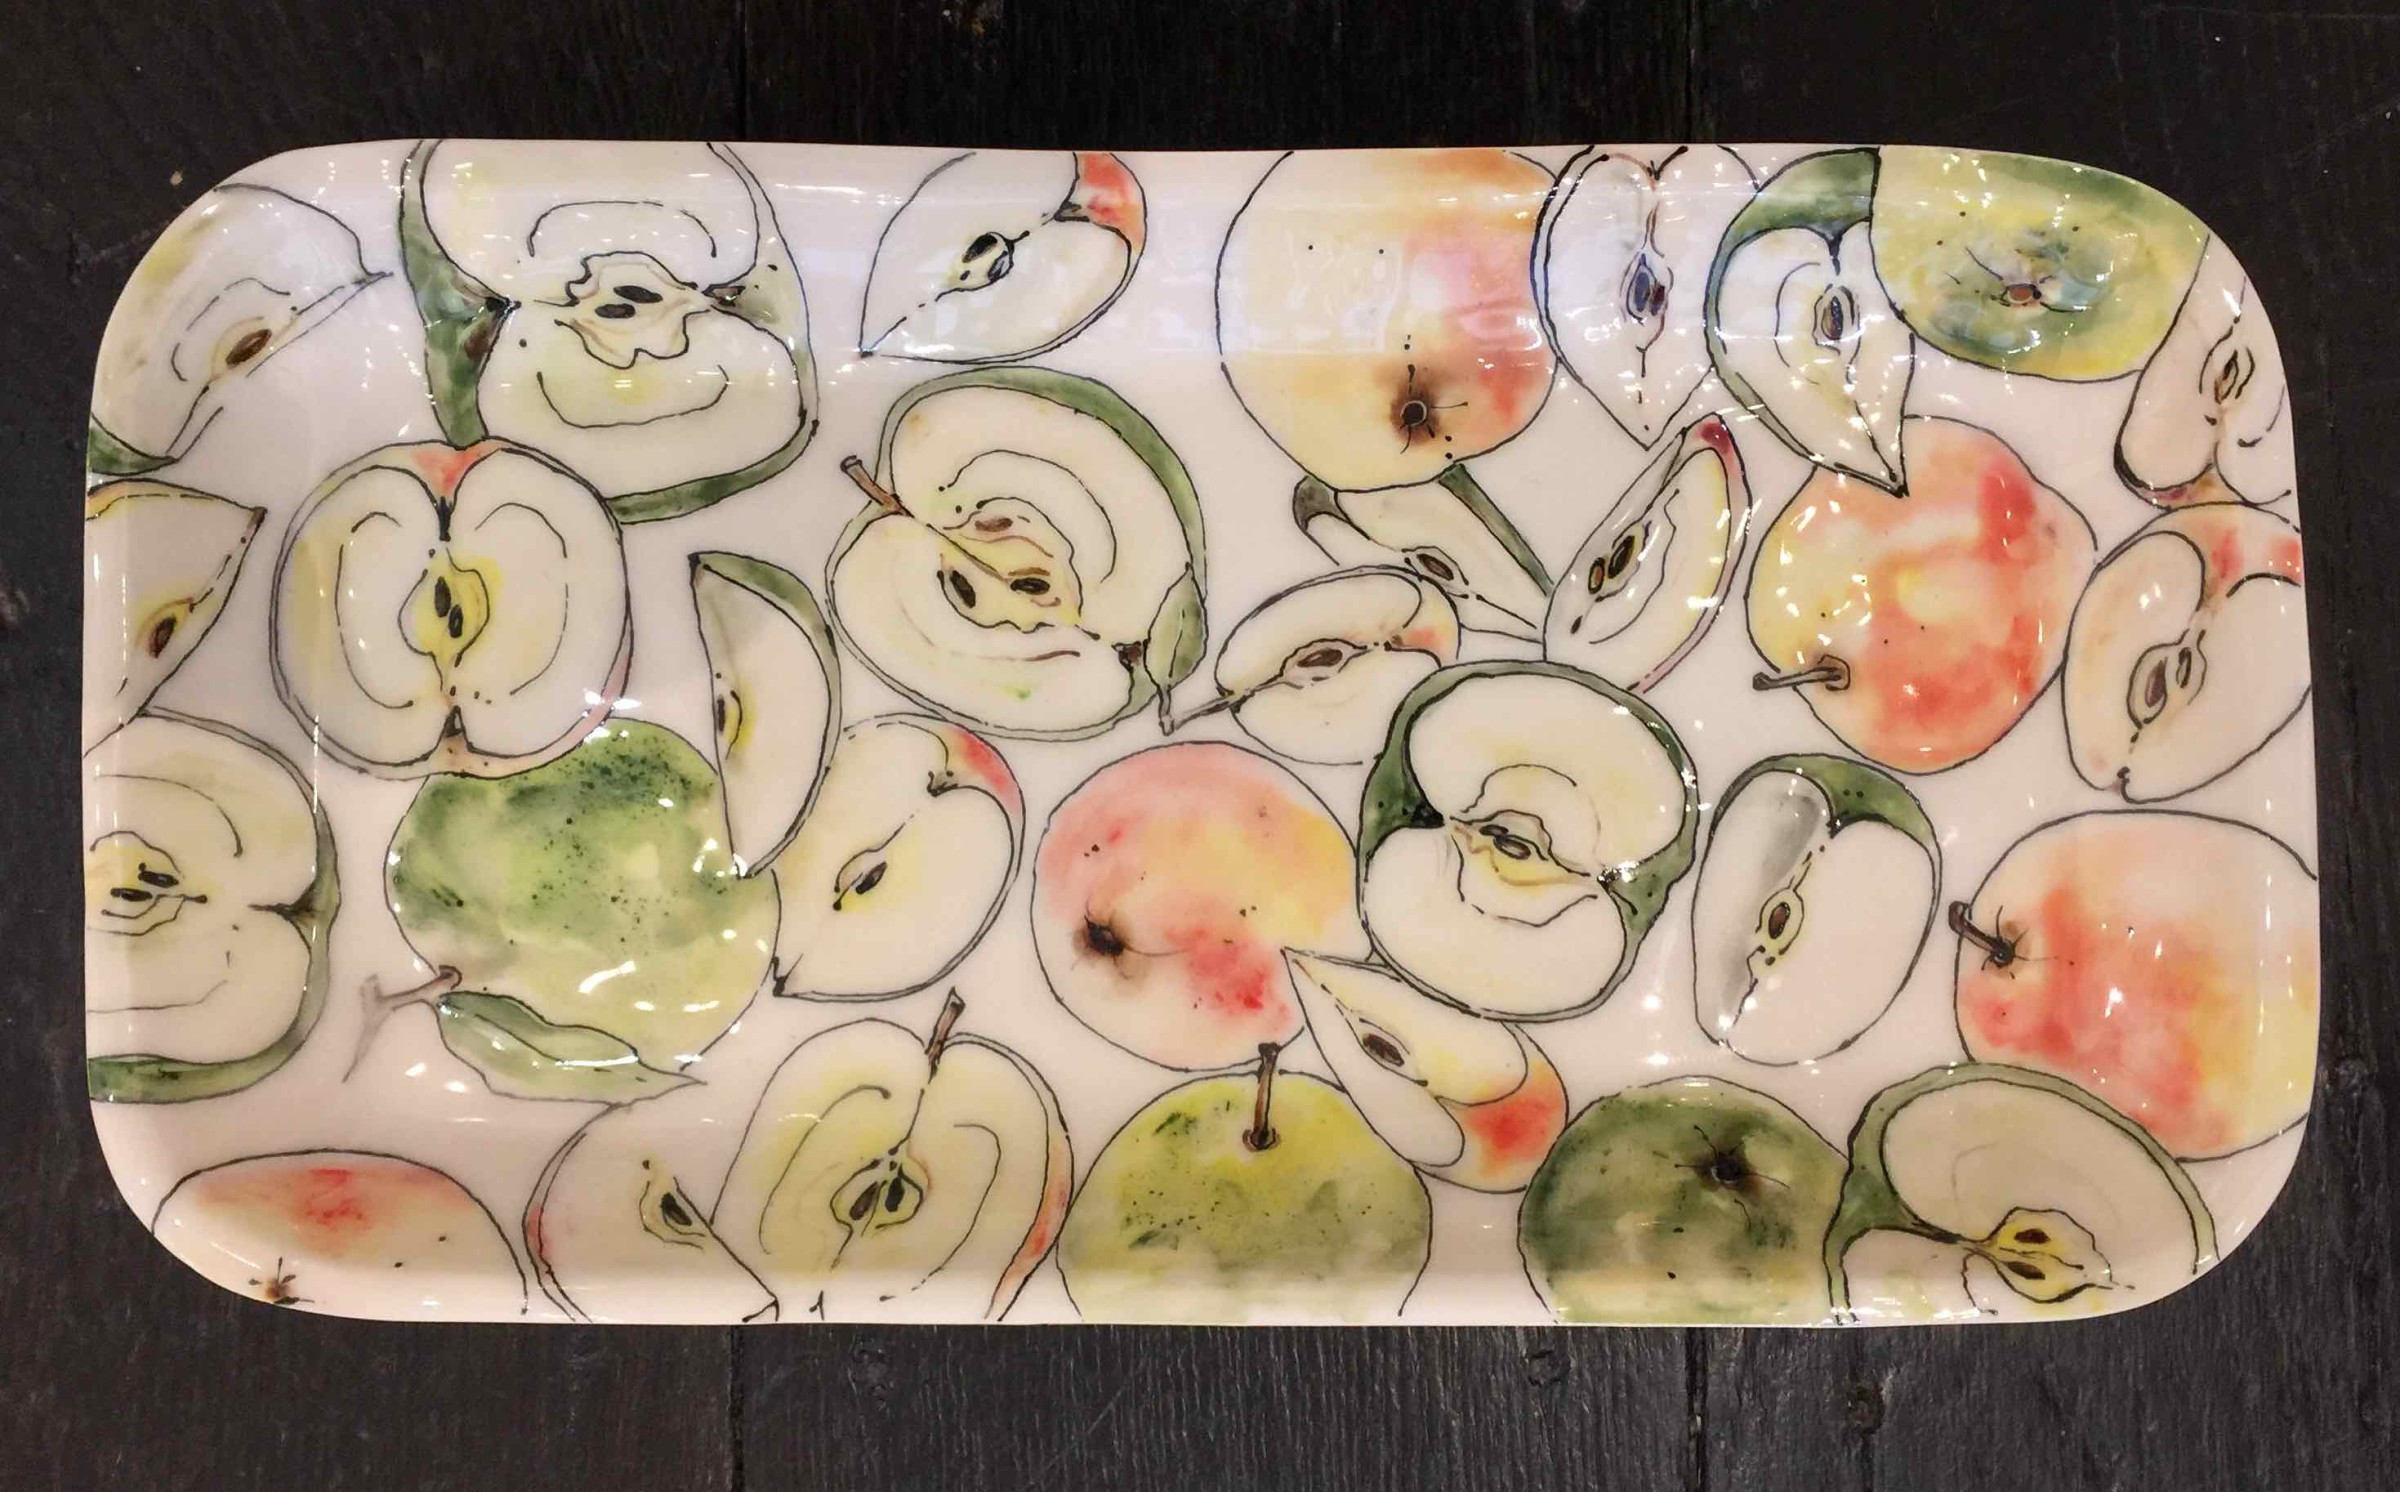 <span class=&#34;link fancybox-details-link&#34;><a href=&#34;/artists/33-kerry-edwards/works/2529-kerry-edwards-apple-platter-rectangular/&#34;>View Detail Page</a></span><div class=&#34;artist&#34;><strong>Kerry Edwards</strong></div> <div class=&#34;title&#34;><em>Apple Platter Rectangular</em></div> <div class=&#34;medium&#34;>Ceramic</div> <div class=&#34;dimensions&#34;>42 x 22 cm</div><div class=&#34;price&#34;>£175.00</div><div class=&#34;copyright_line&#34;>Copyright The Artist</div>